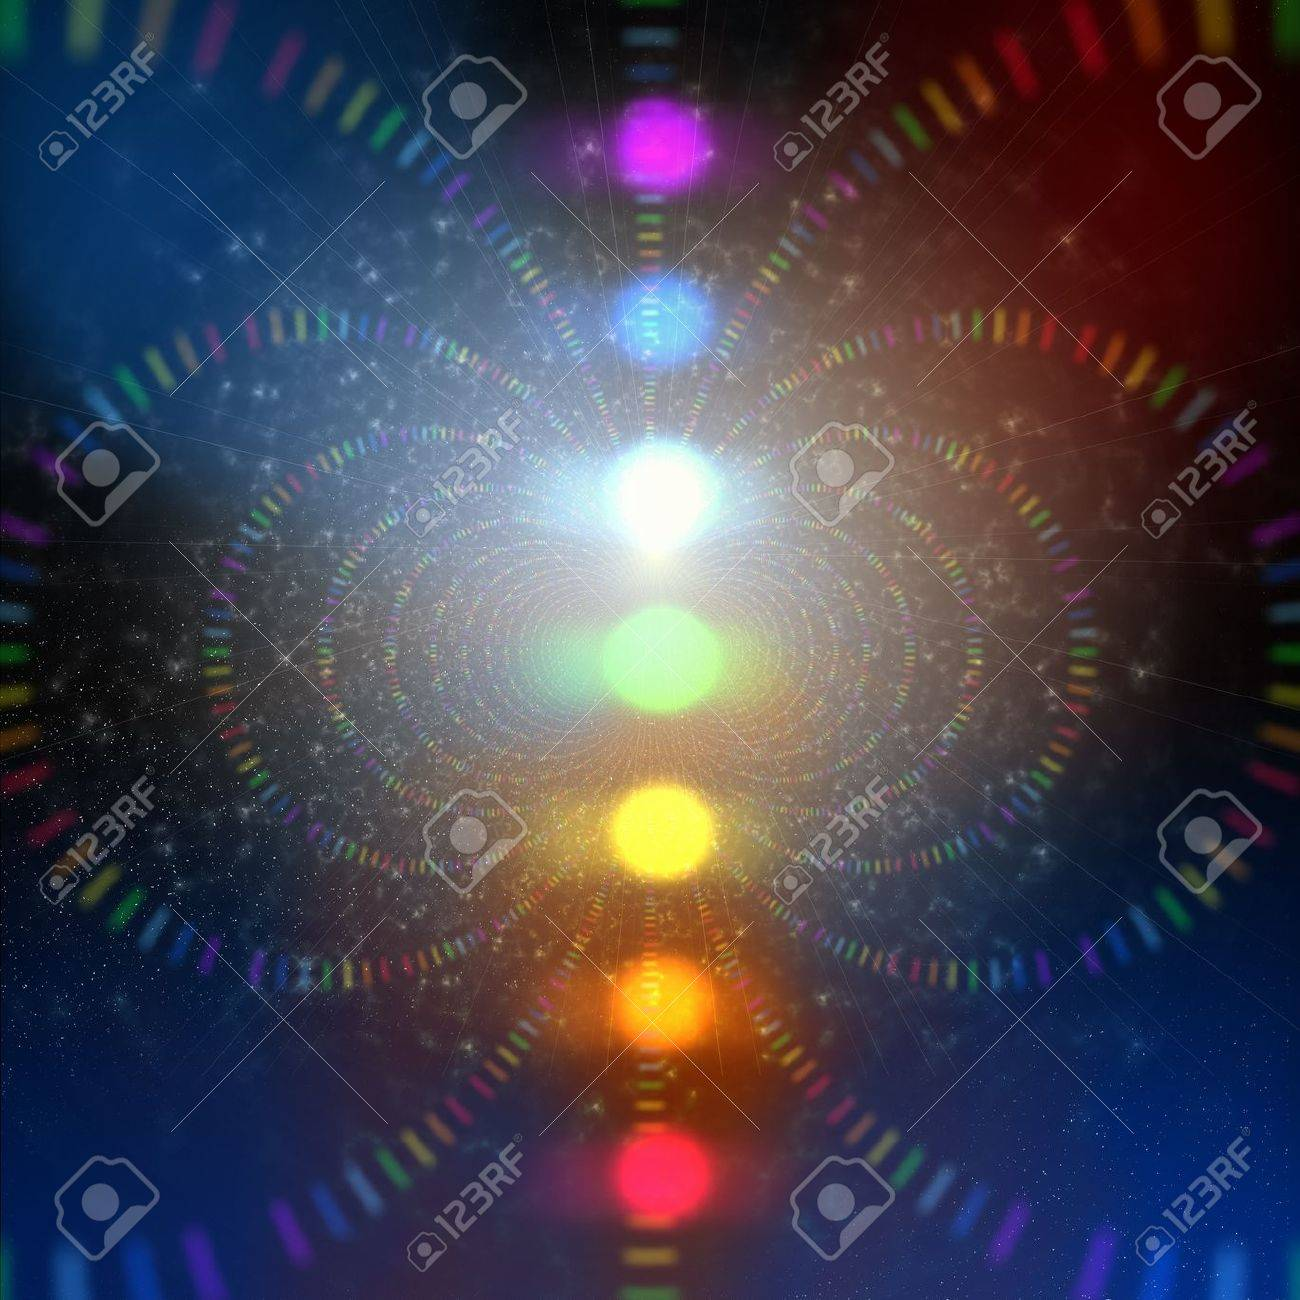 cosmic energy abstract background with rainbow corcles Stock Photo - 18051912